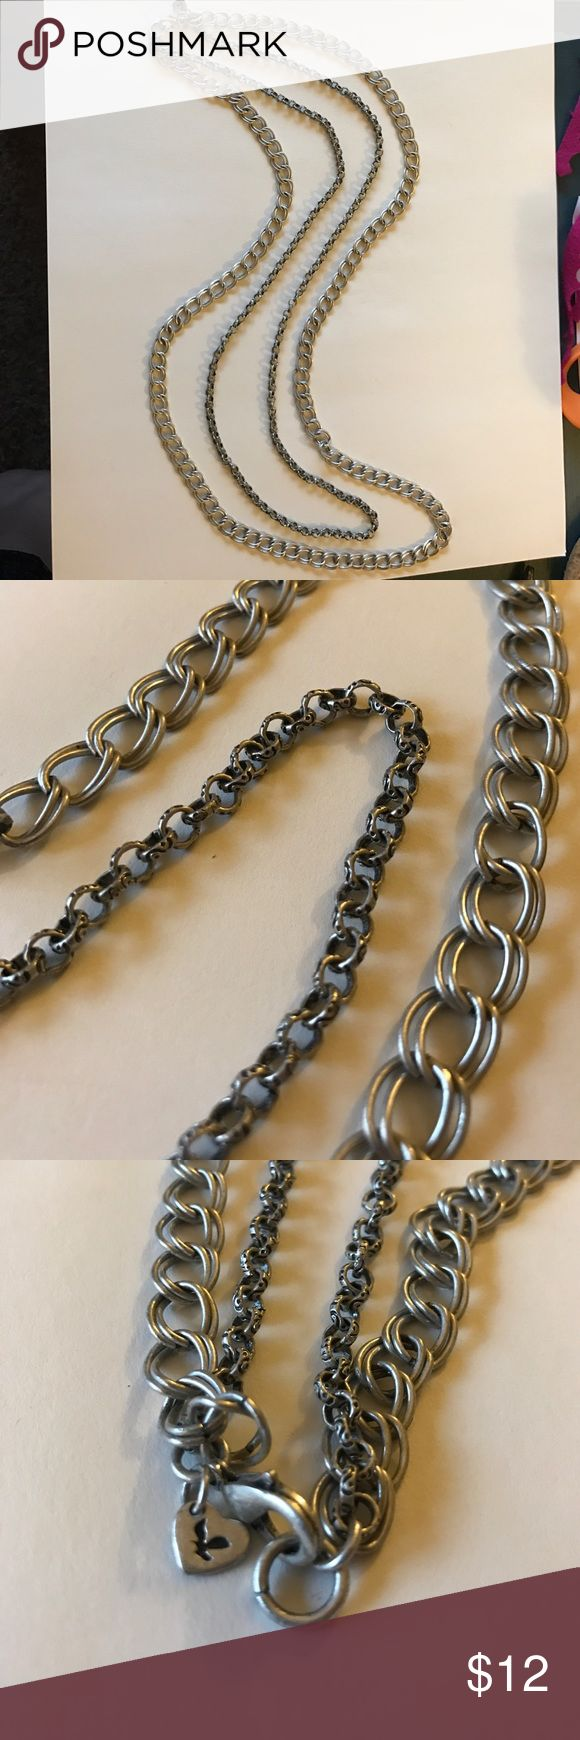 "Double Chain Necklace Double silver chain long necklace. Length approx 19"" Jewelry Necklaces"